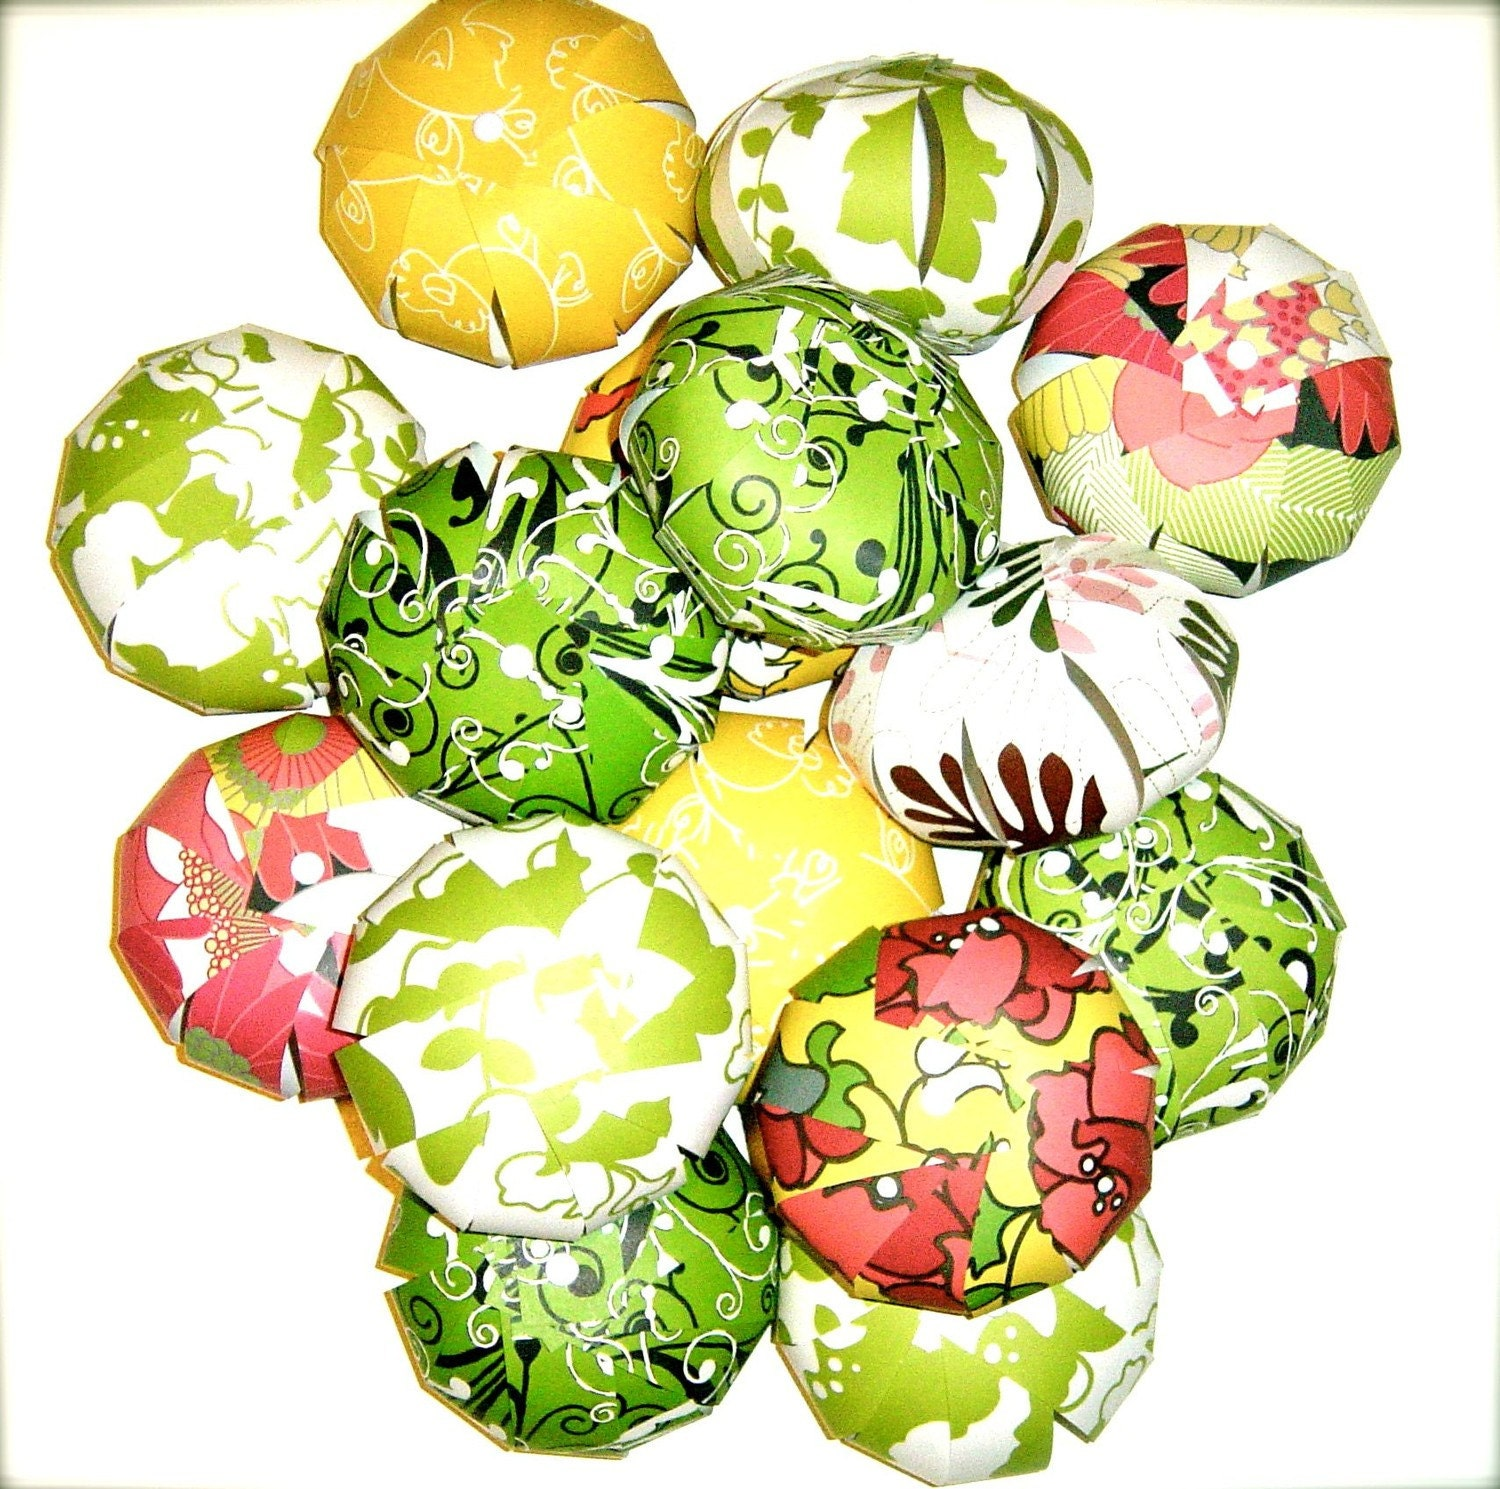 15 Paper Saucy Sweet Sangria Pom Poms Balls Tangerines pomegranates photo props tablescape ornament collection garland place holders Potpourri Chocolate Brown, Pistachio Kiwi, Lemon, white, OOAK